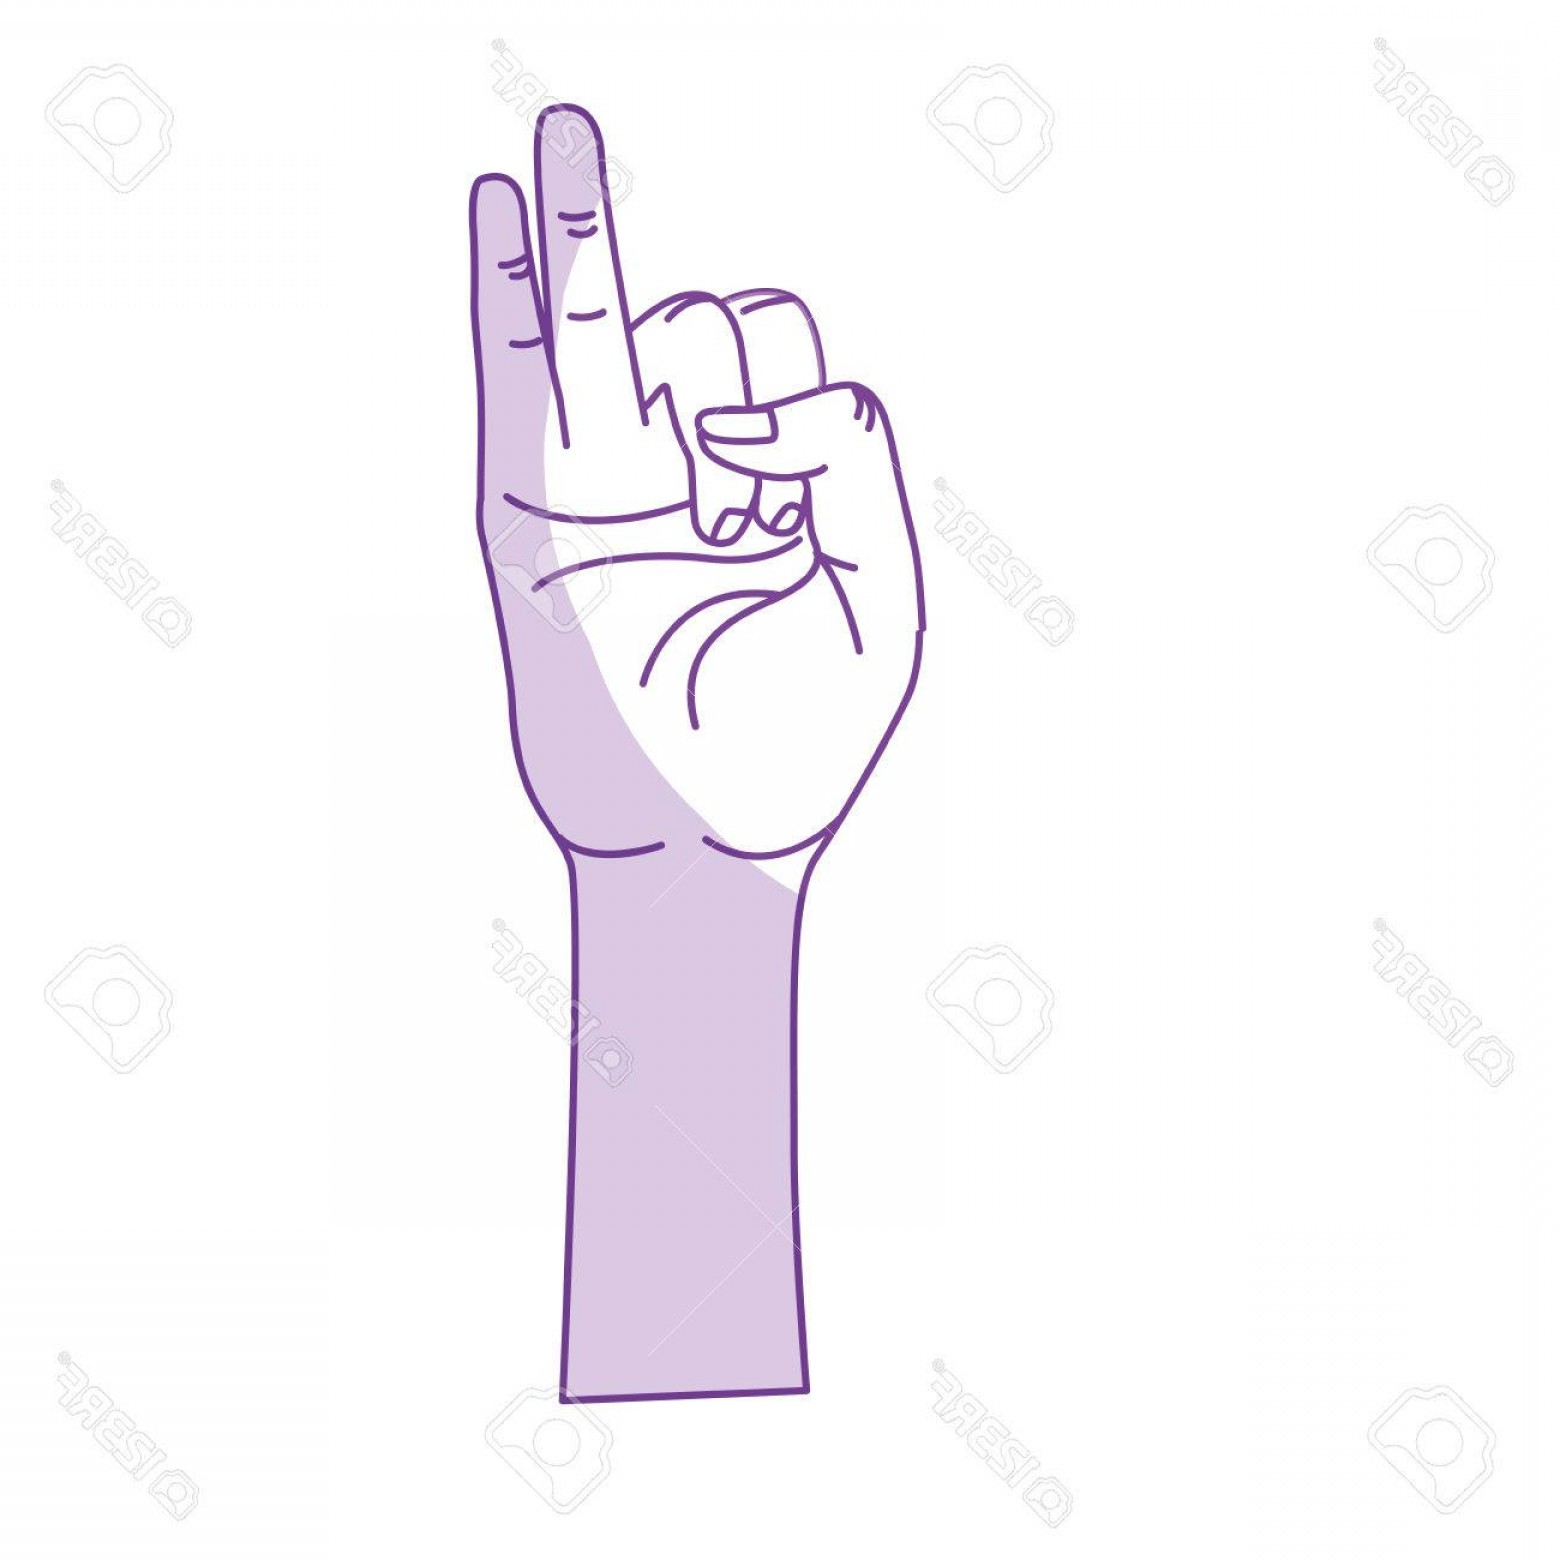 Hand With Ring Silhouette Vector: Photostock Vector Silhouette Hand With Pinky And Ring Finger Up Symbol